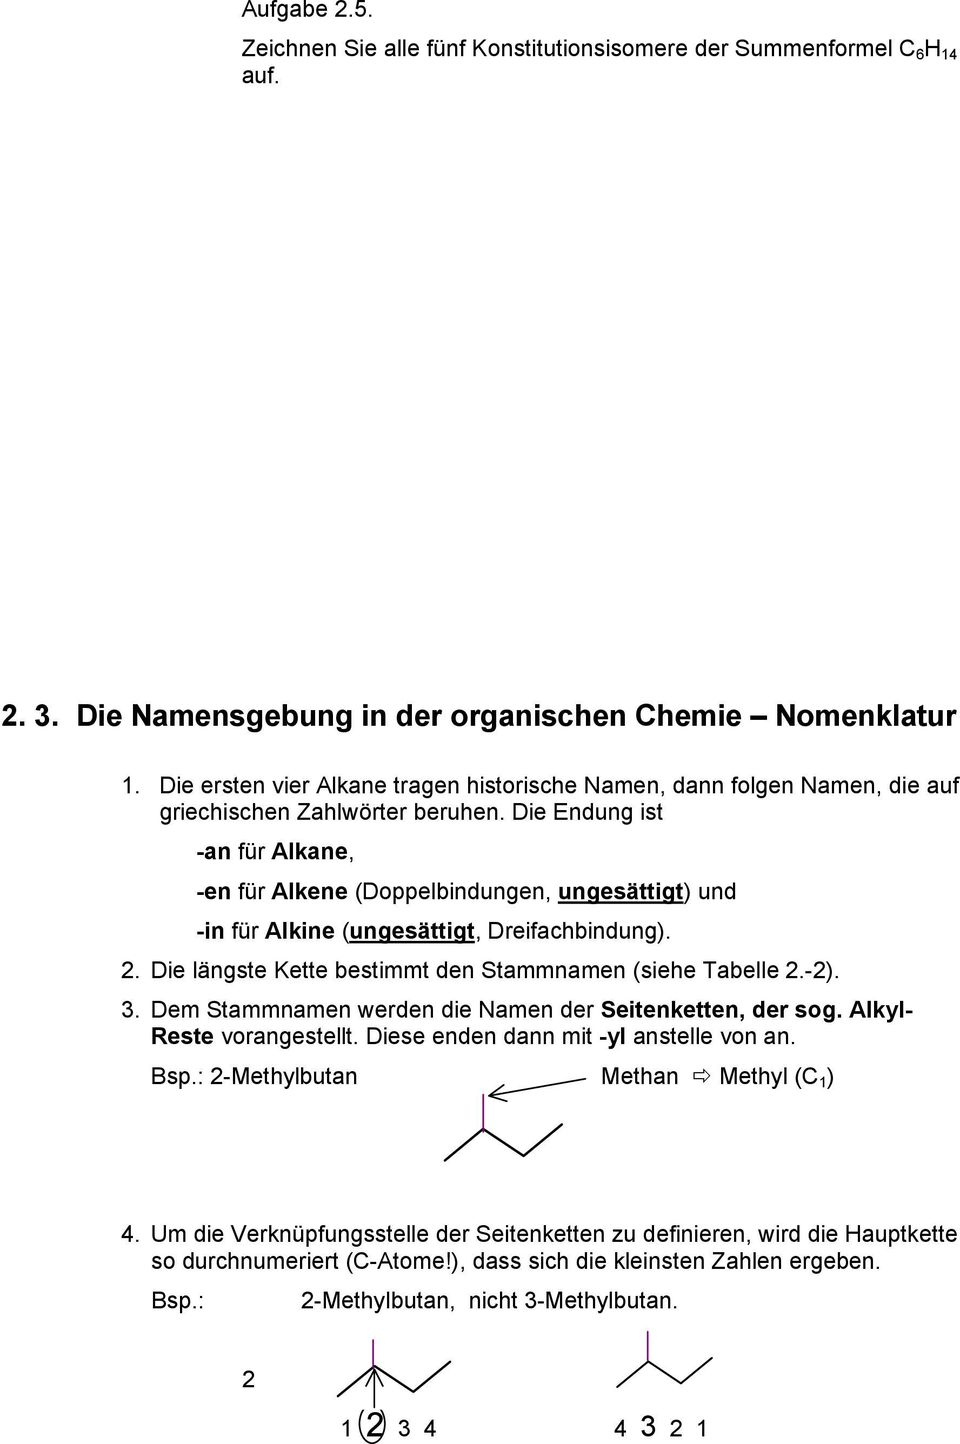 Colorful Alkine Arbeitsblatt Inspiration - Mathe Arbeitsblatt ...